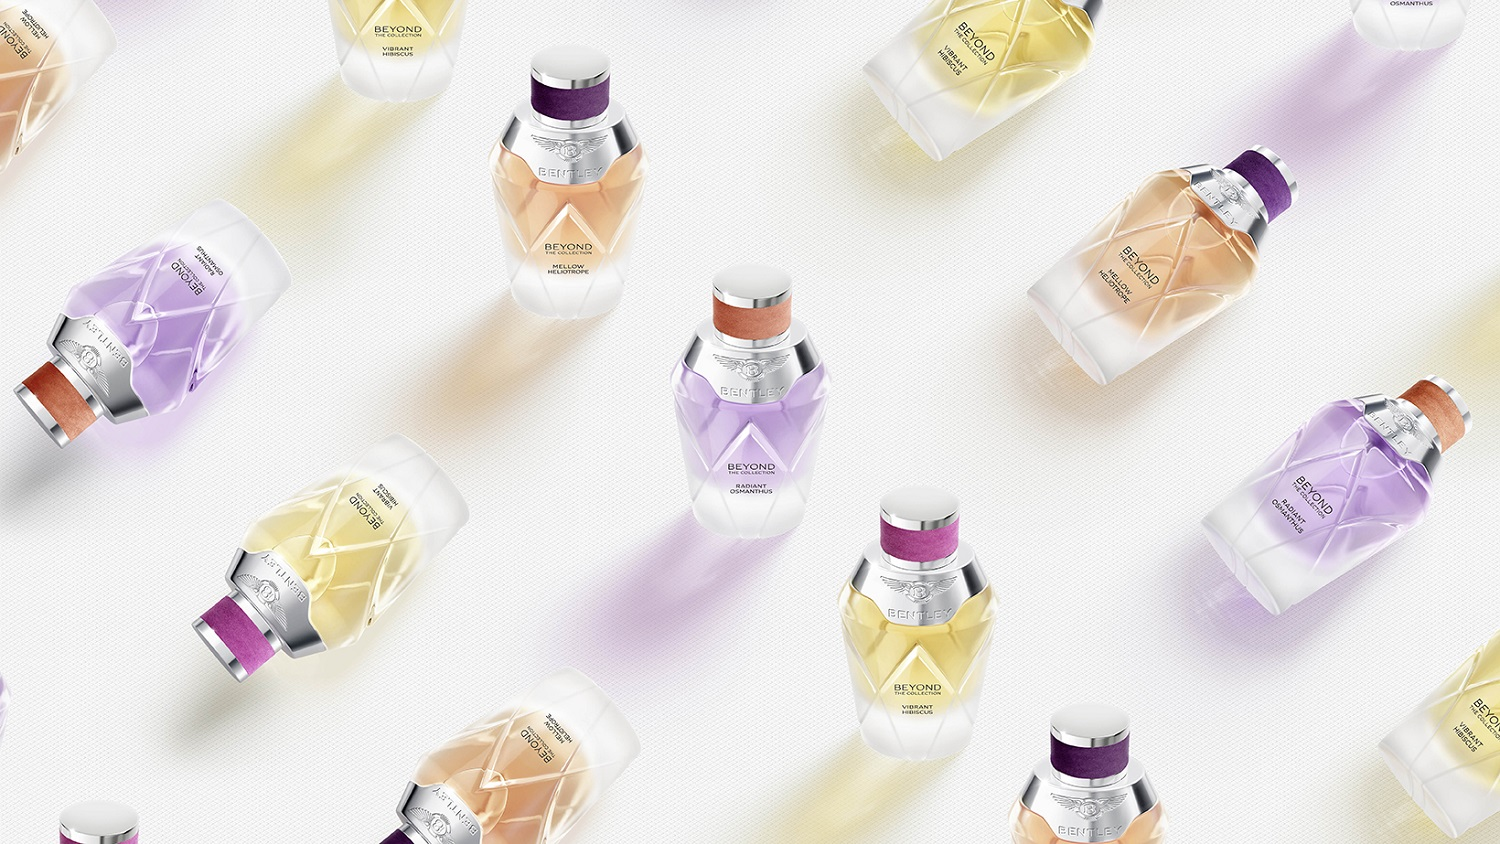 Three New Floral Scents From Bentley Beyond In The First Collection For Her